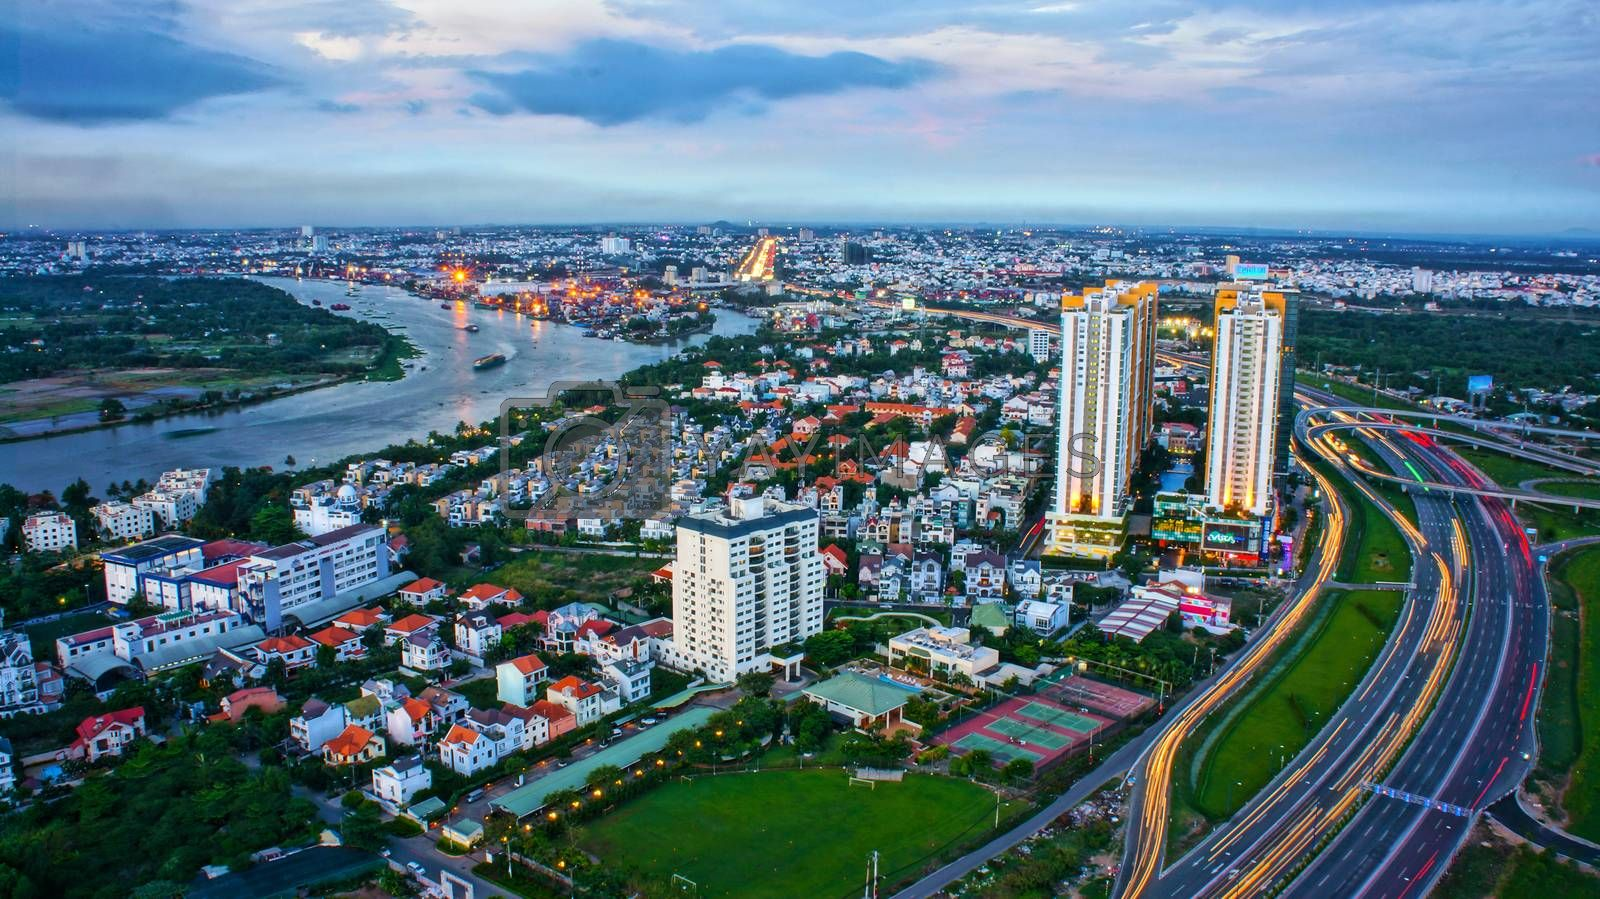 Impression panorama of Ho Chi Minh city by xuanhuongho